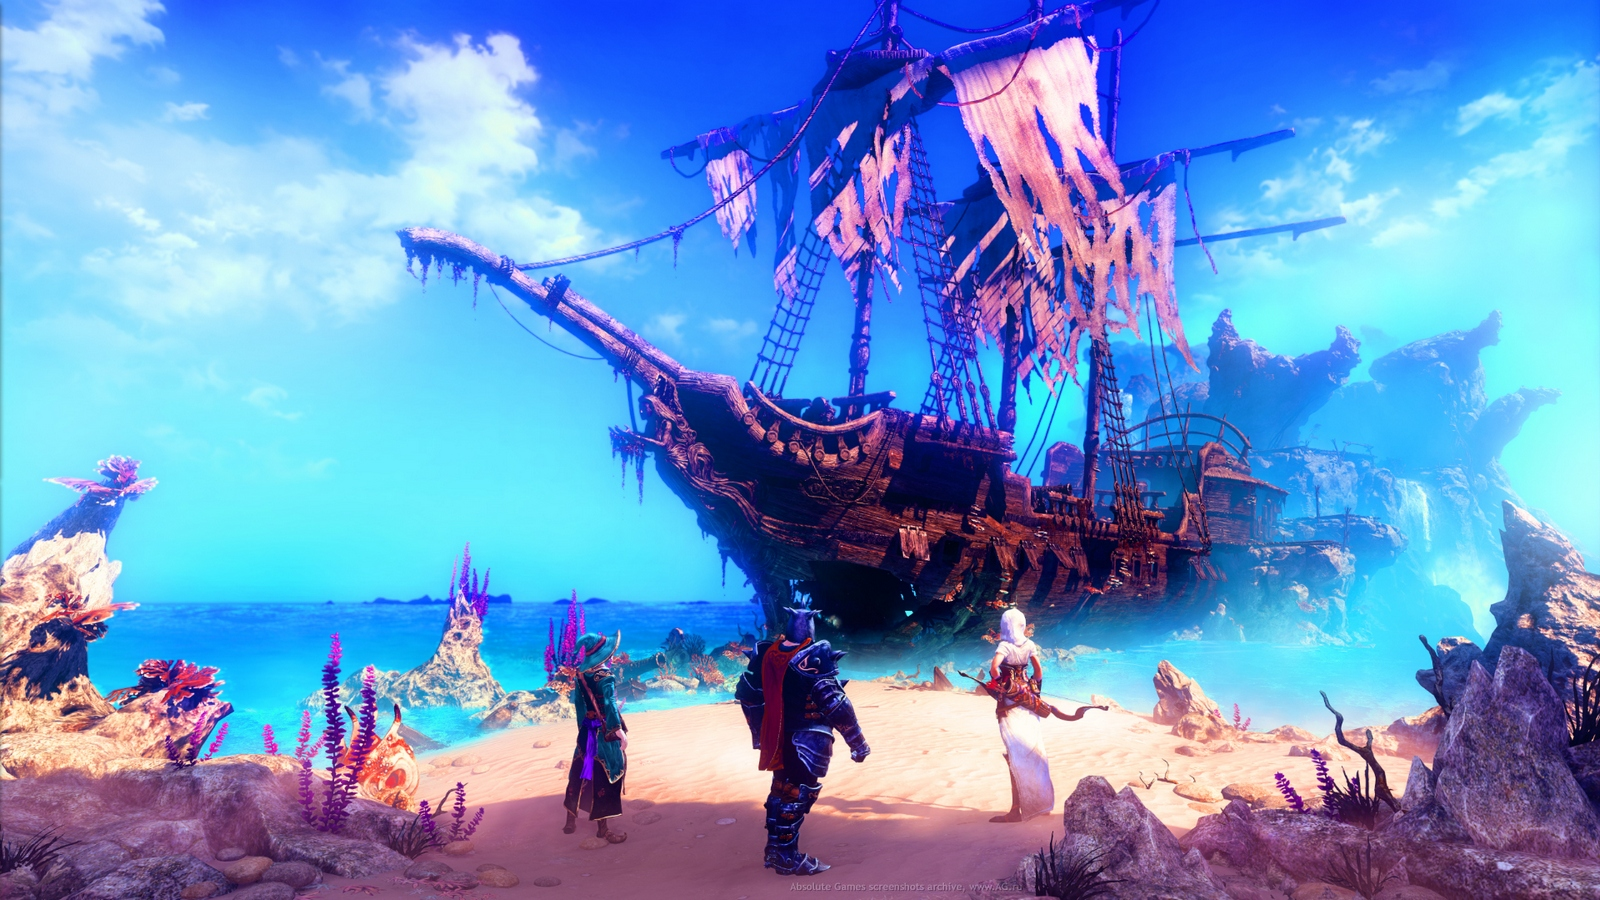 Скриншот Trine 3 The Artifacts of Power v0.06 build 2921 (Лицензия) №2